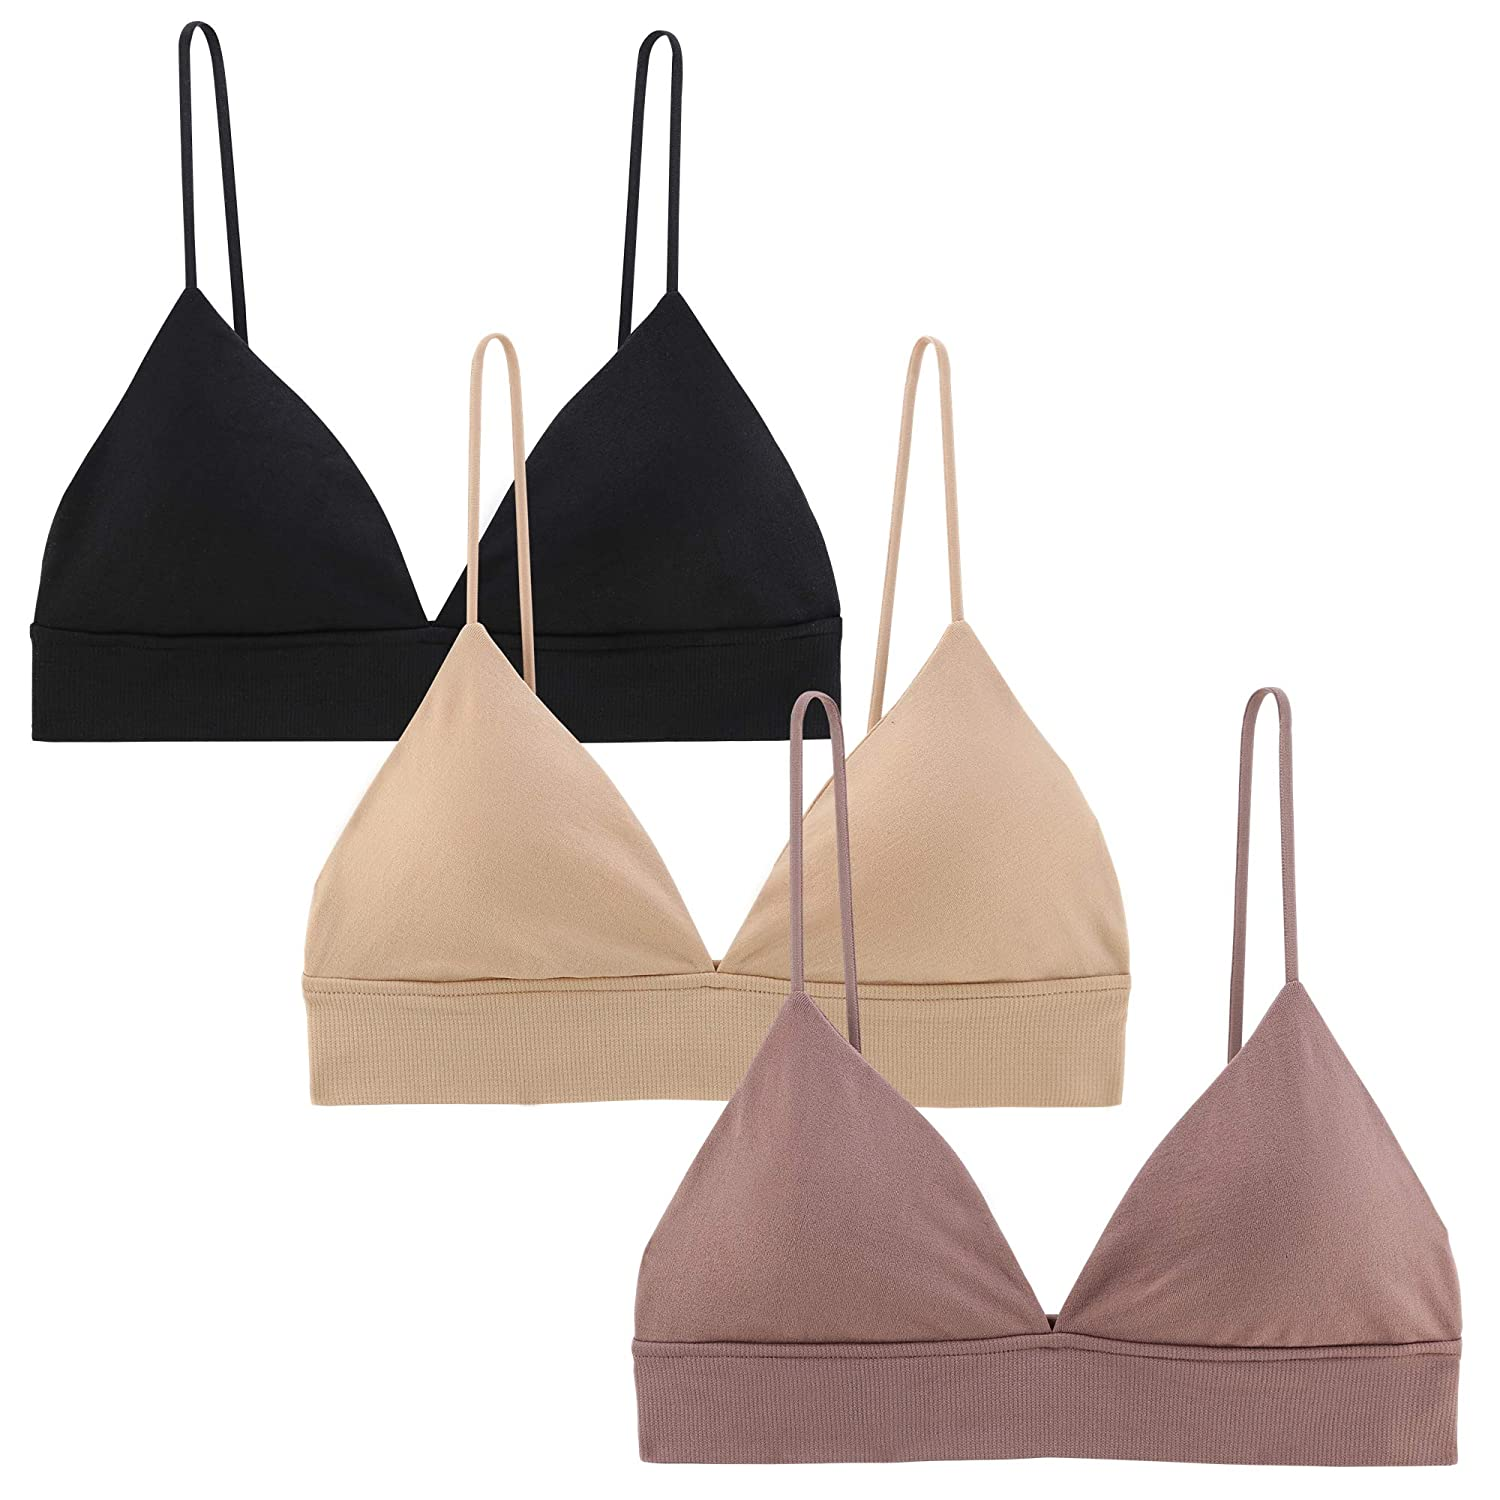 256c7e7237 INIBUD Bralette for Women Bra Seamless V Neck Triangle Removable Padded  Wire Free Pull On Bralettes Bustier Lingerie at Amazon Women s Clothing  store